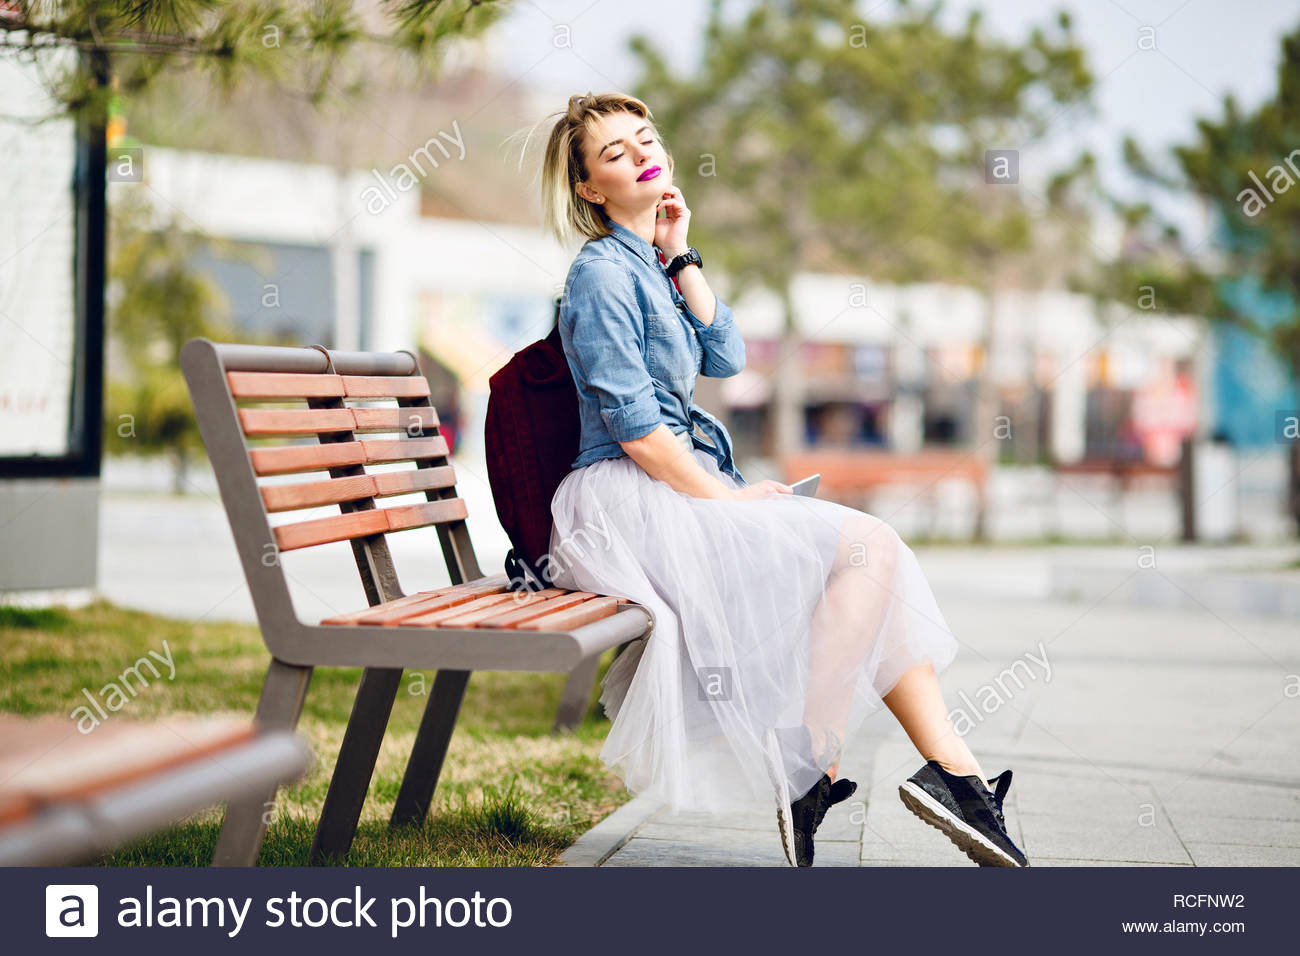 a9a5ef10 Young cute blond girl with short hair sitting on a wooden bench and  dreaming with eyes